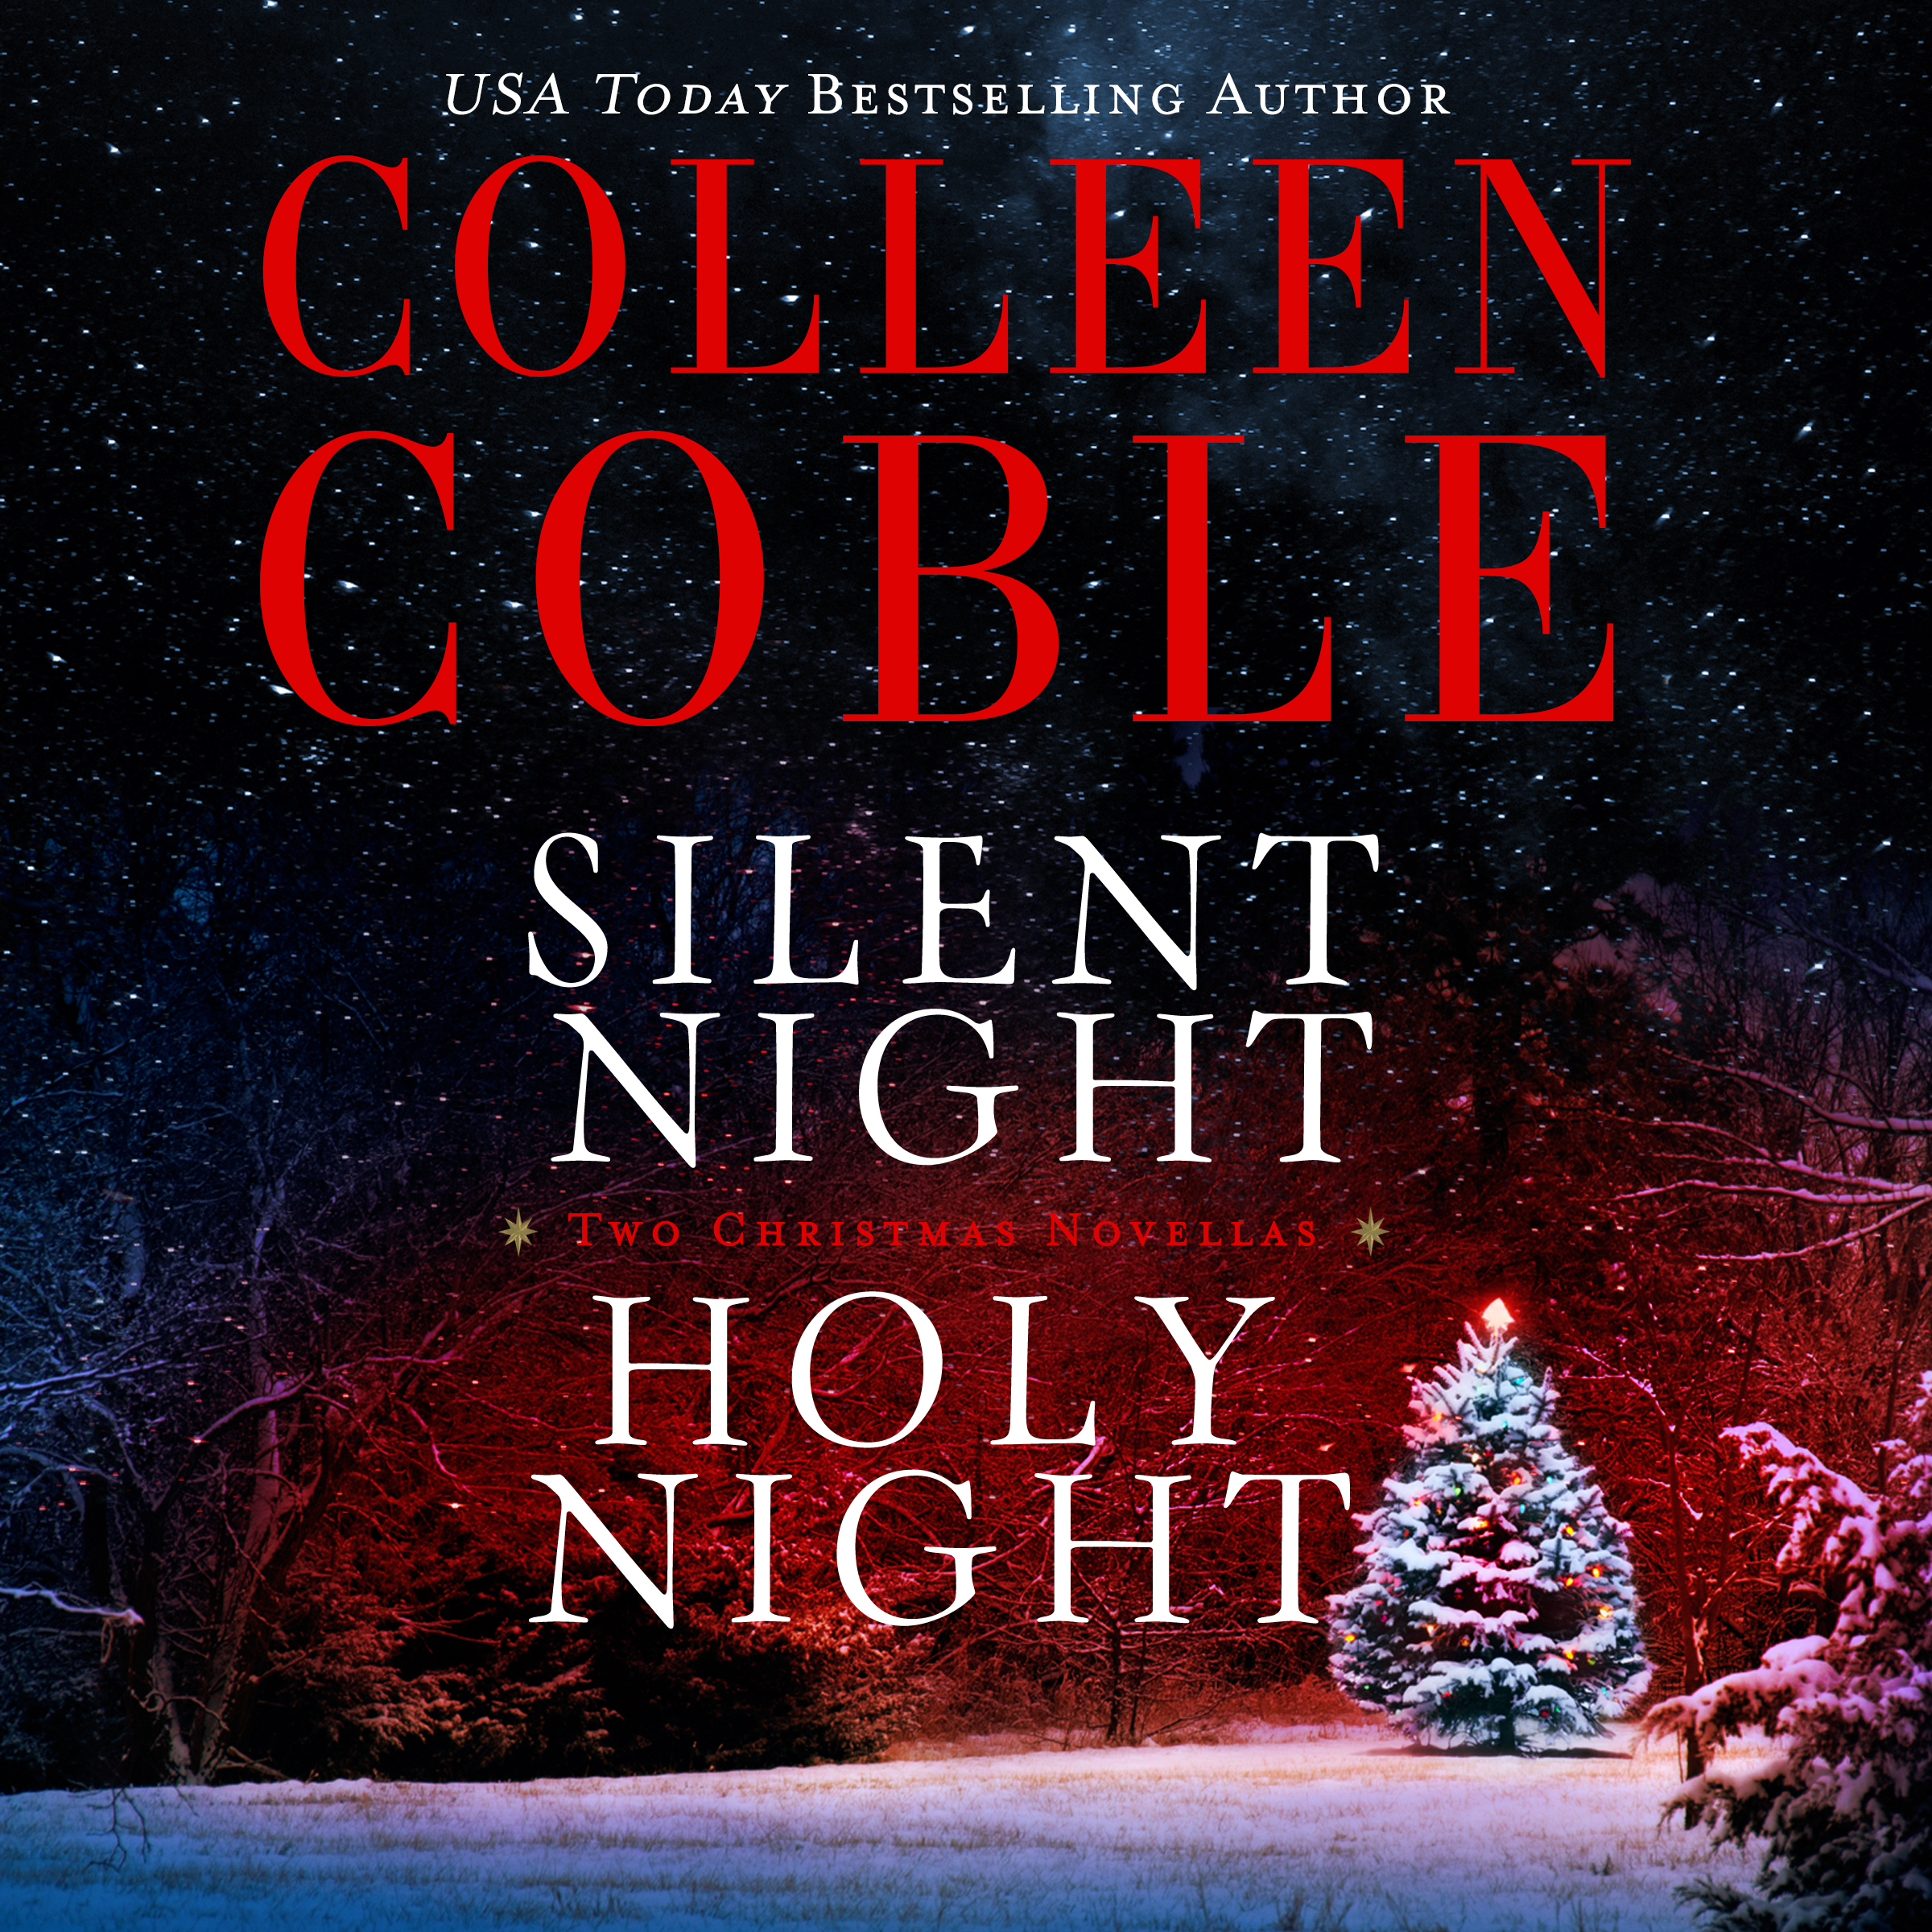 Printable Silent Night, Holy Night: A Colleen Coble Christmas Collection Audiobook Cover Art